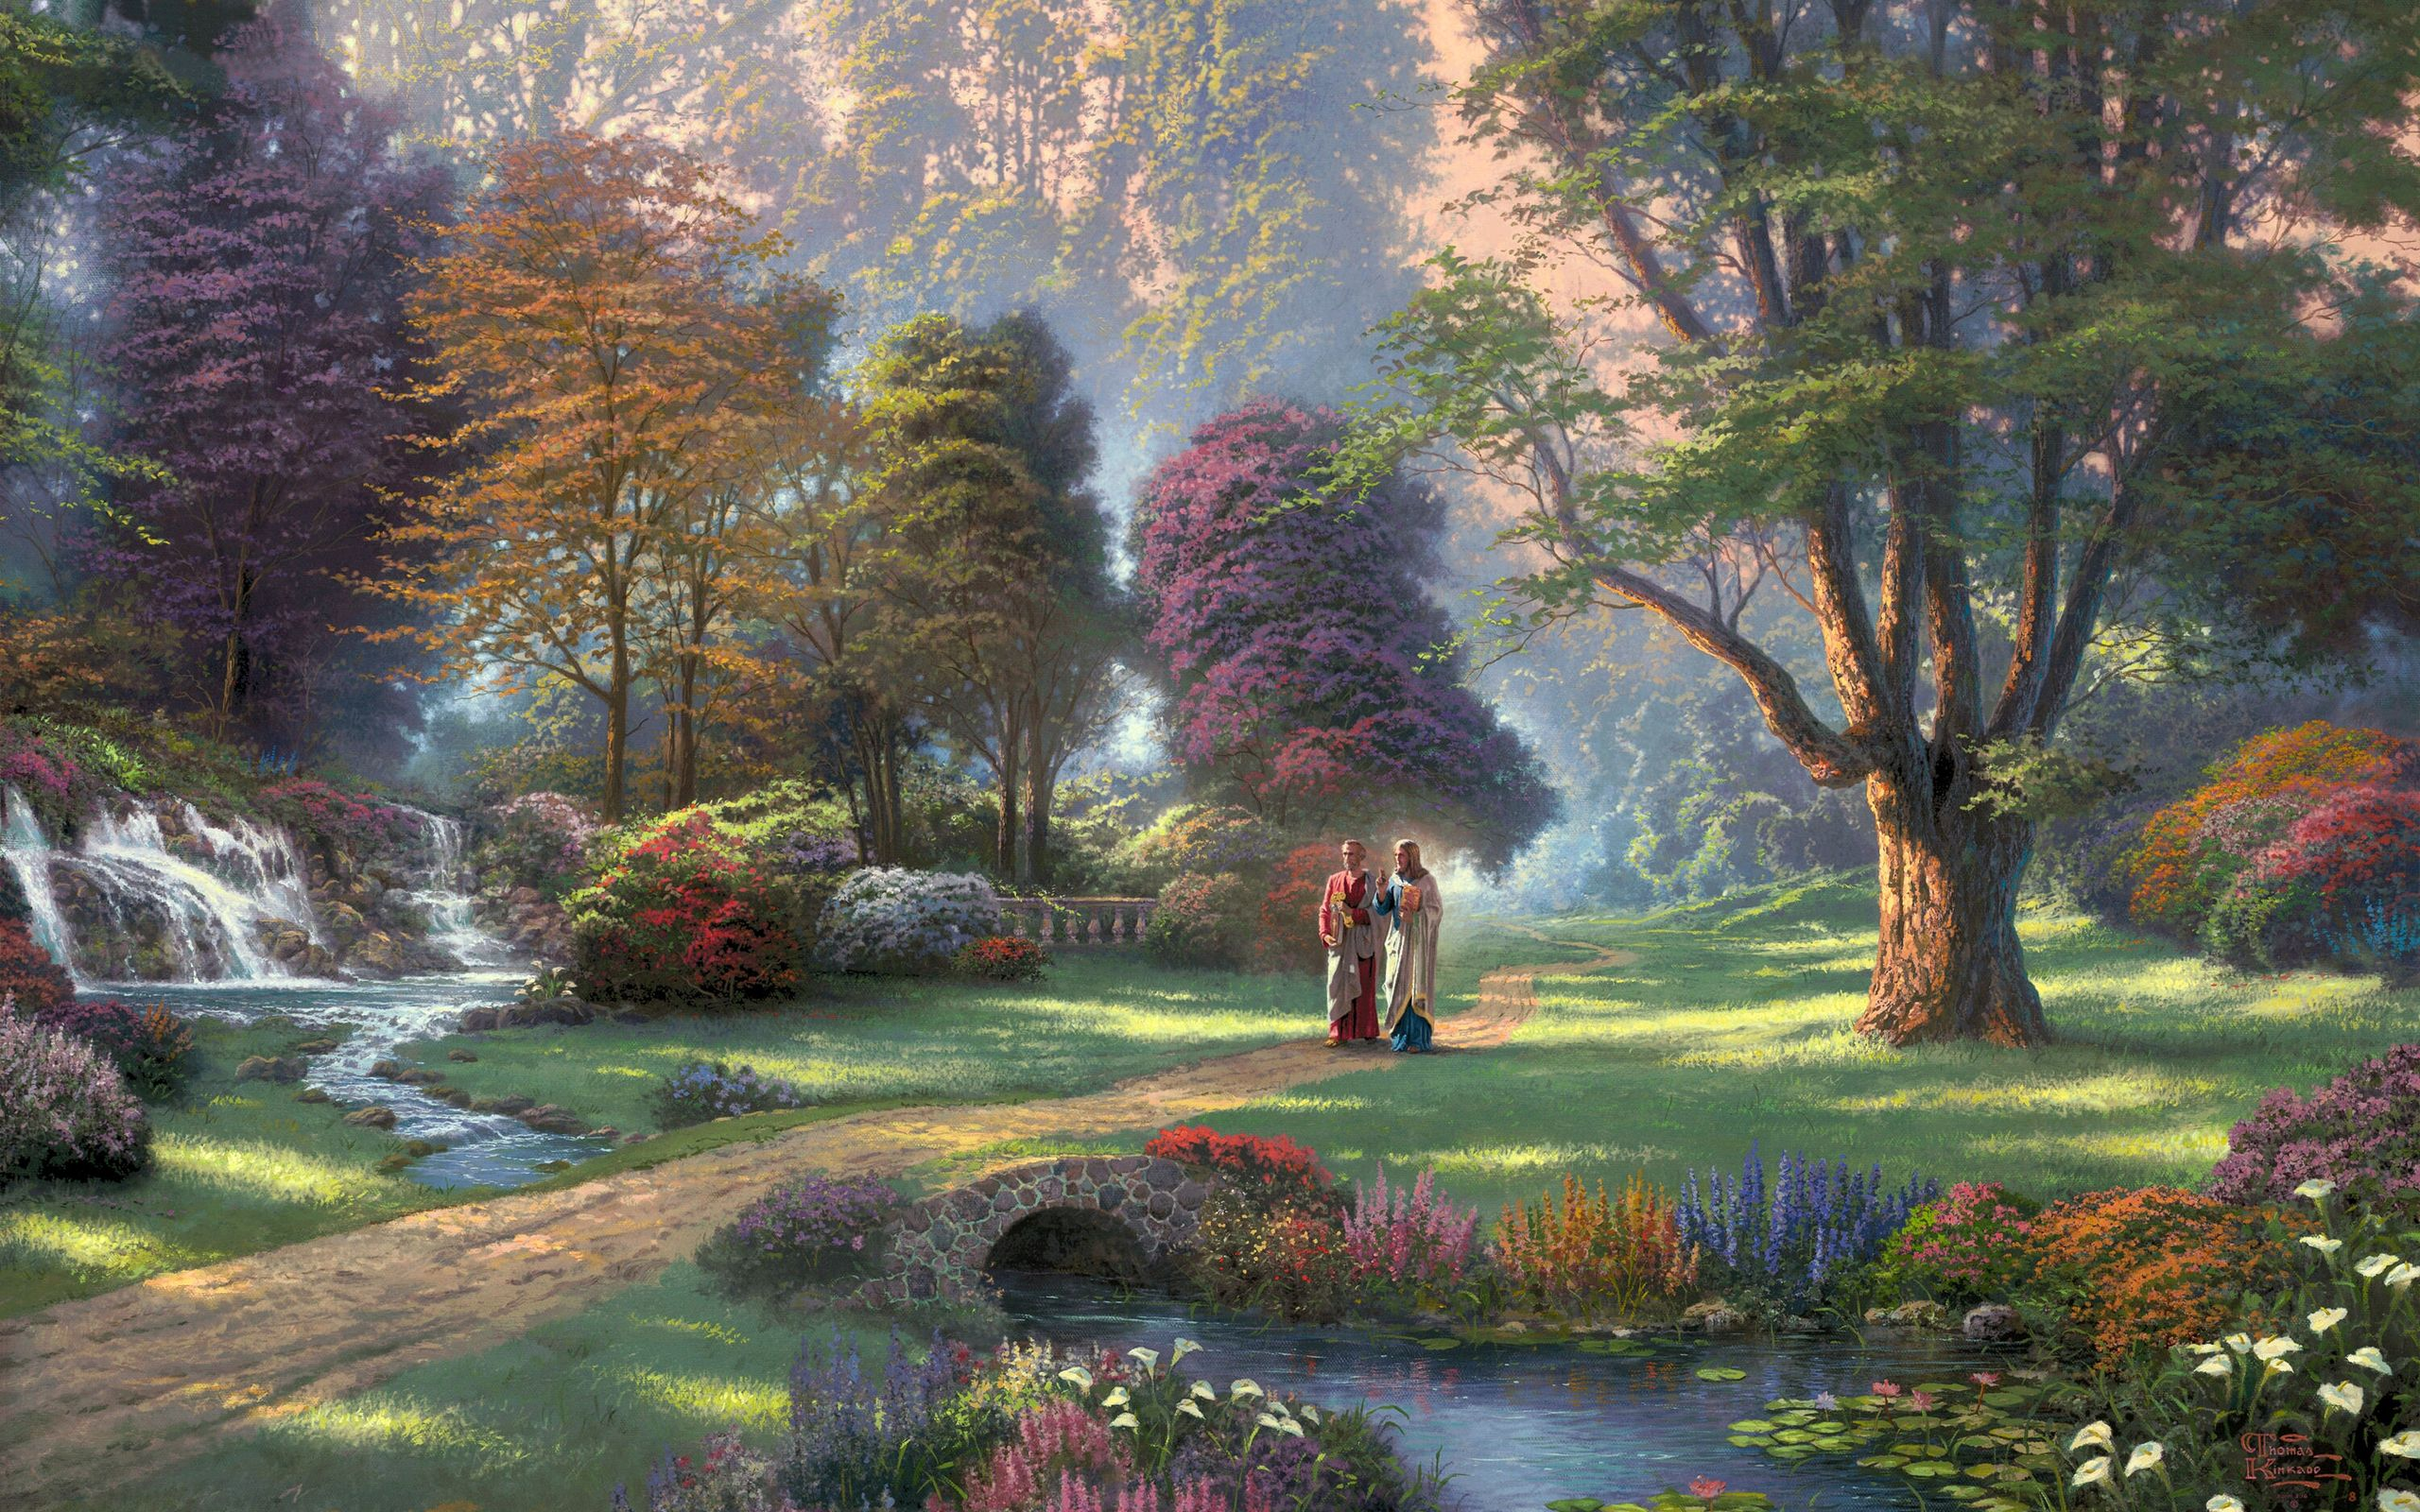 Painting Wallpaper Find best latest Painting Wallpaper for your PC desktop  background & mobile phones.